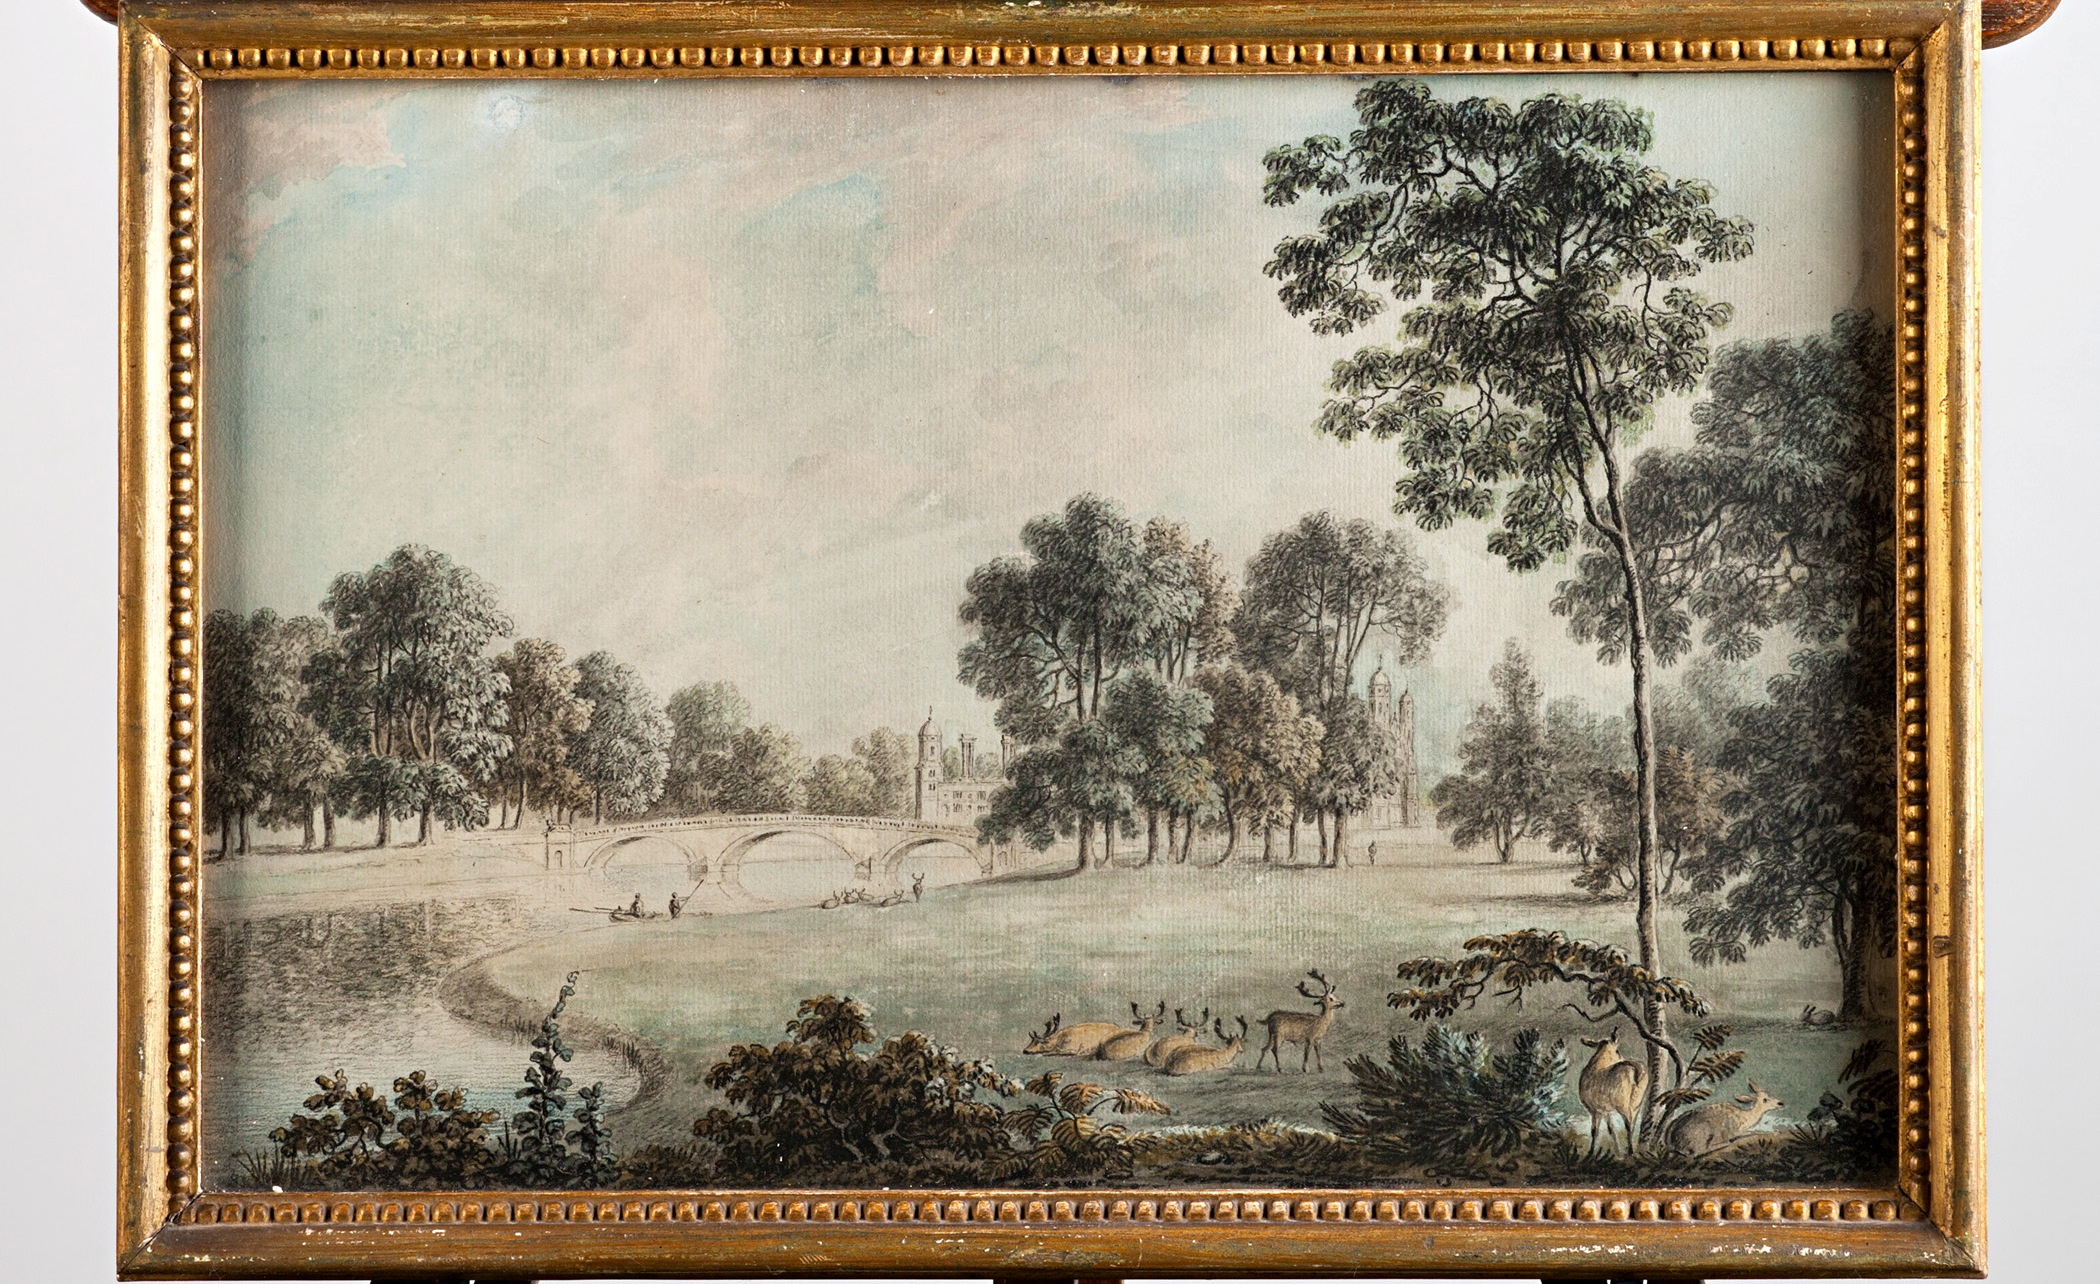 A set of sixteen views of Burghley, The House, The Park, The Adjacent Landscape and The Town of Stamford, by Anthony Devis (1729-1817).